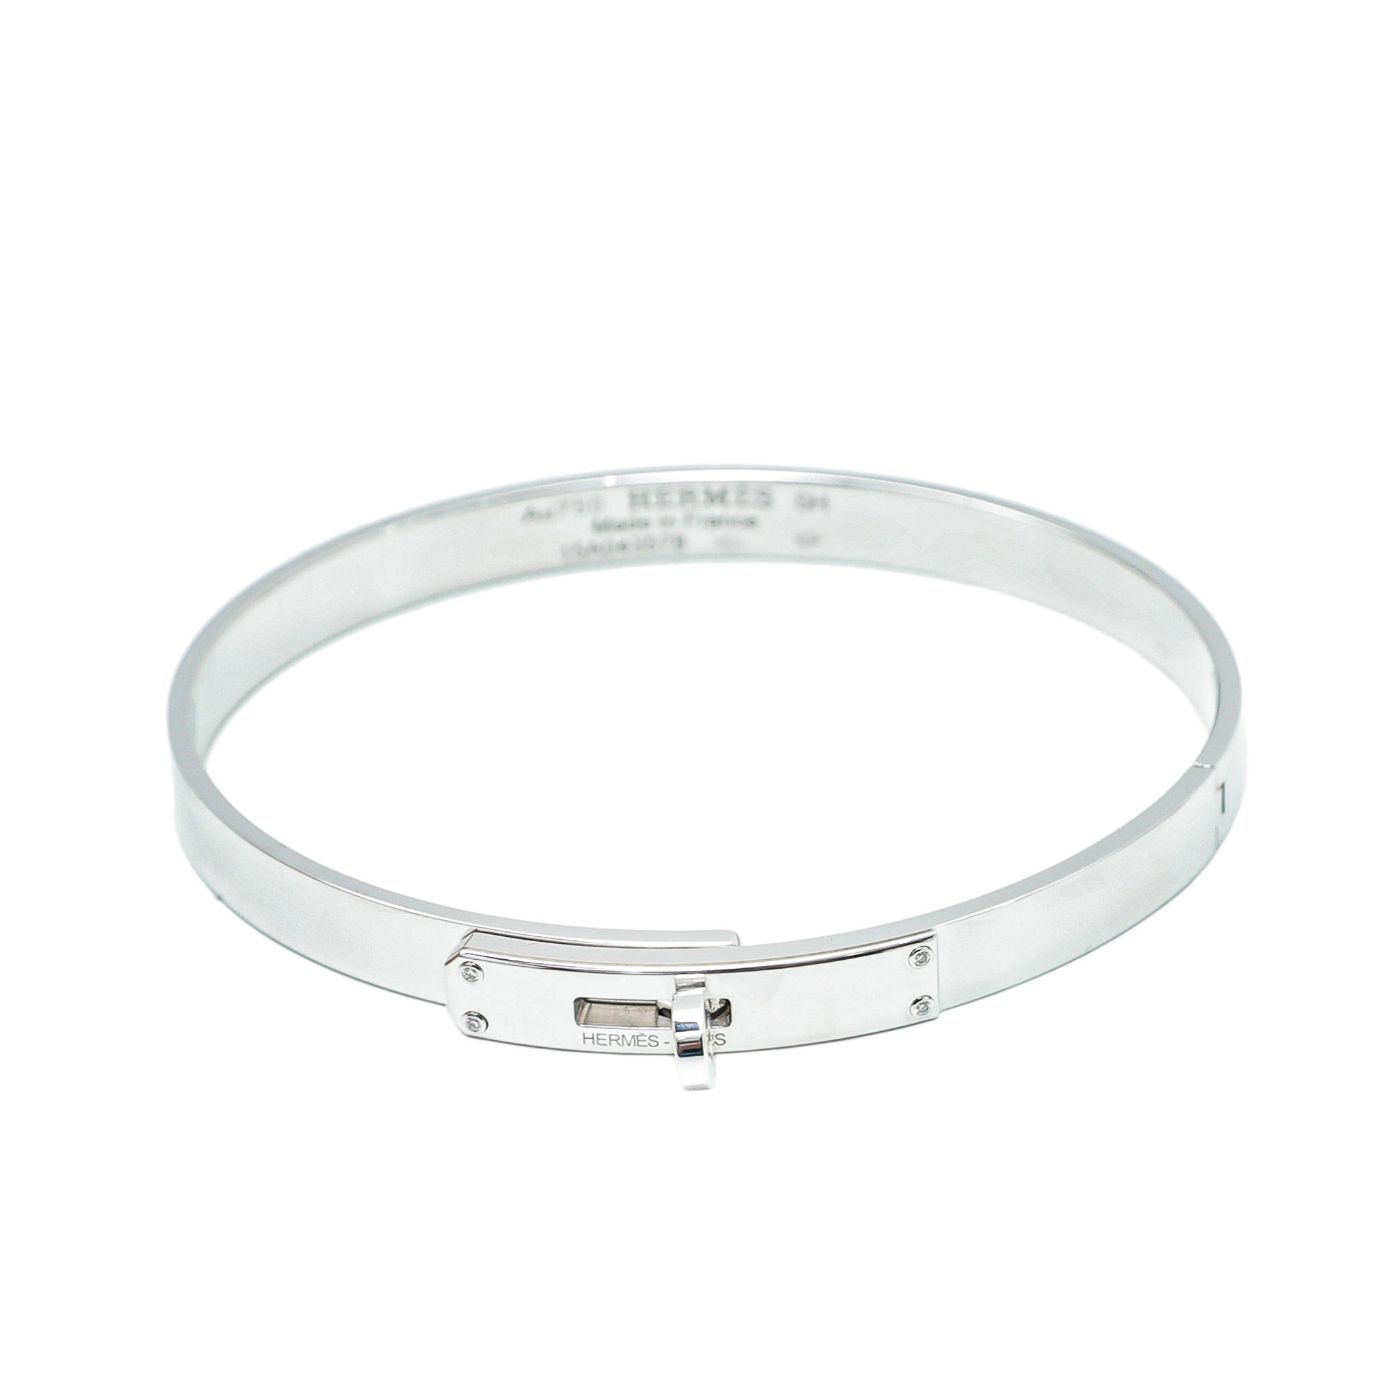 Hermes kelly 18k White Gold Small Bracelet